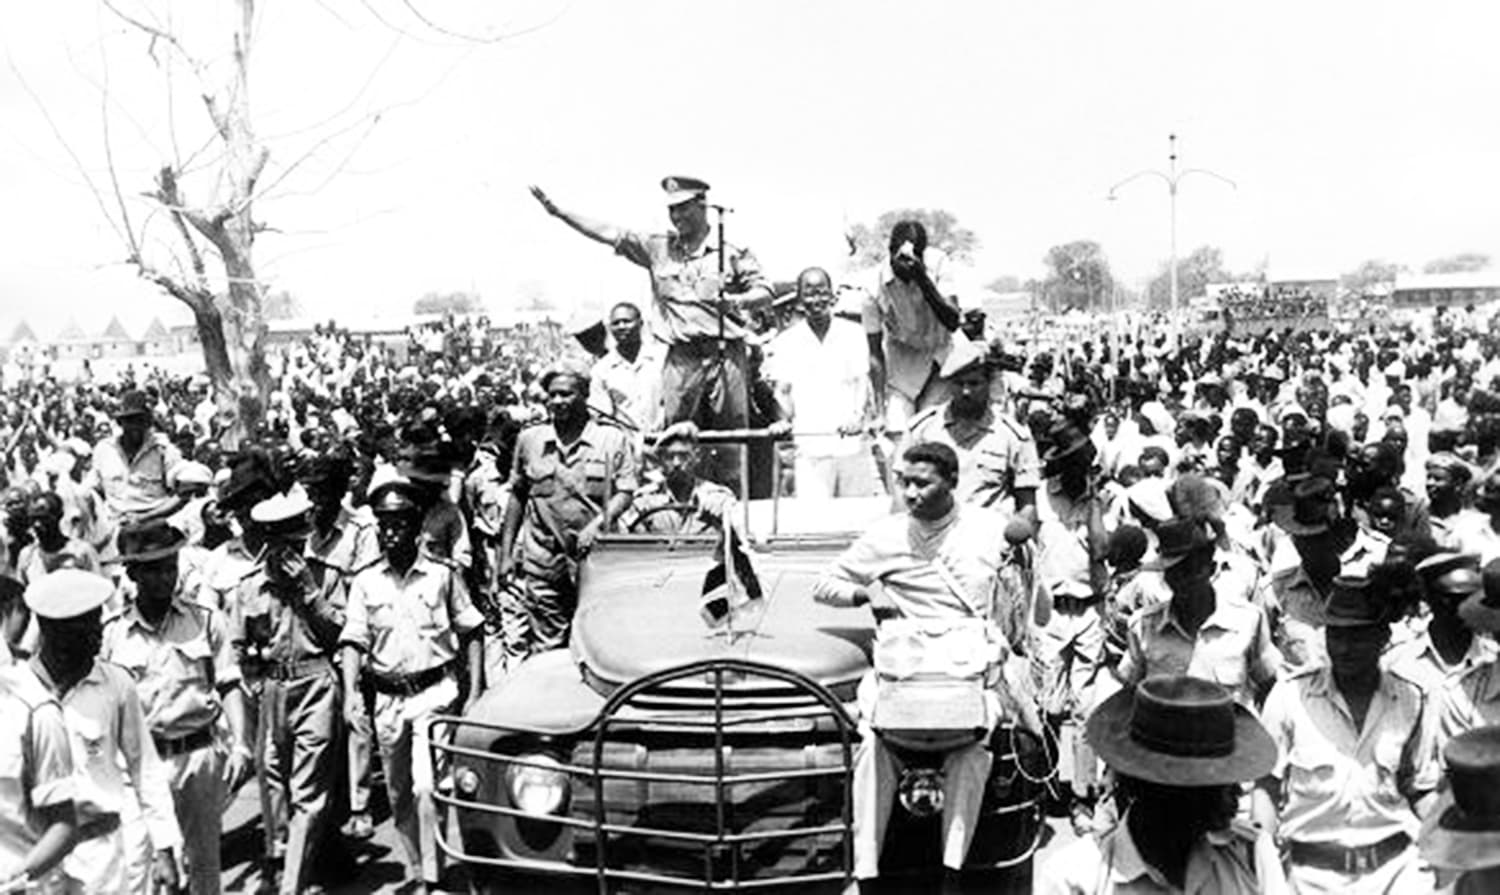 Greeted by large crowds, Nimeiry waves to people in the Christian-majority of Southern Sudan in 1973. — Photo: The Dutch Foundation.